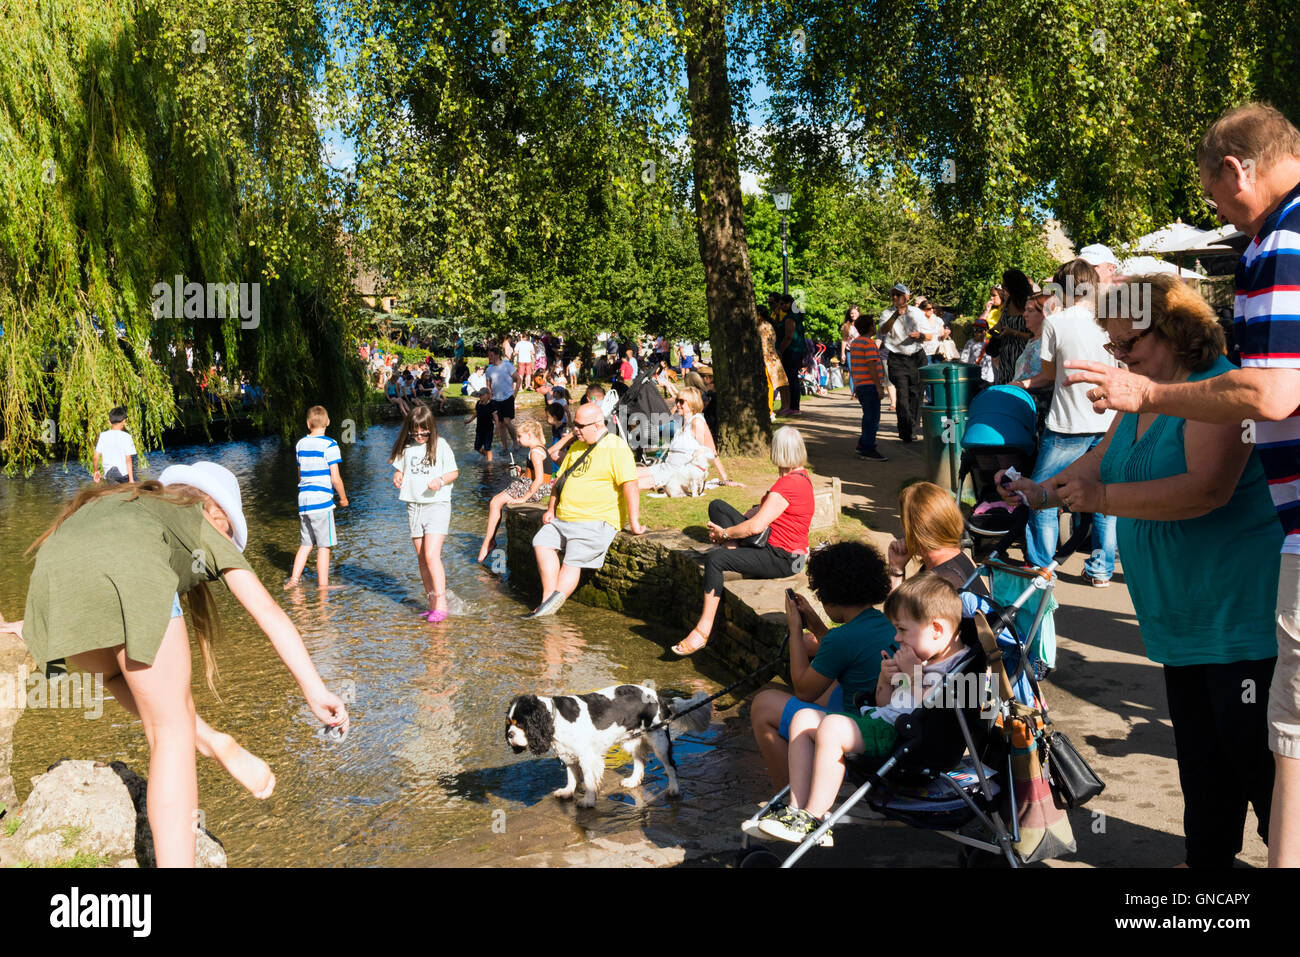 Children paddling in the River Windrush at Bourton-on-the-Water, Cotswolds, UK - Stock Image